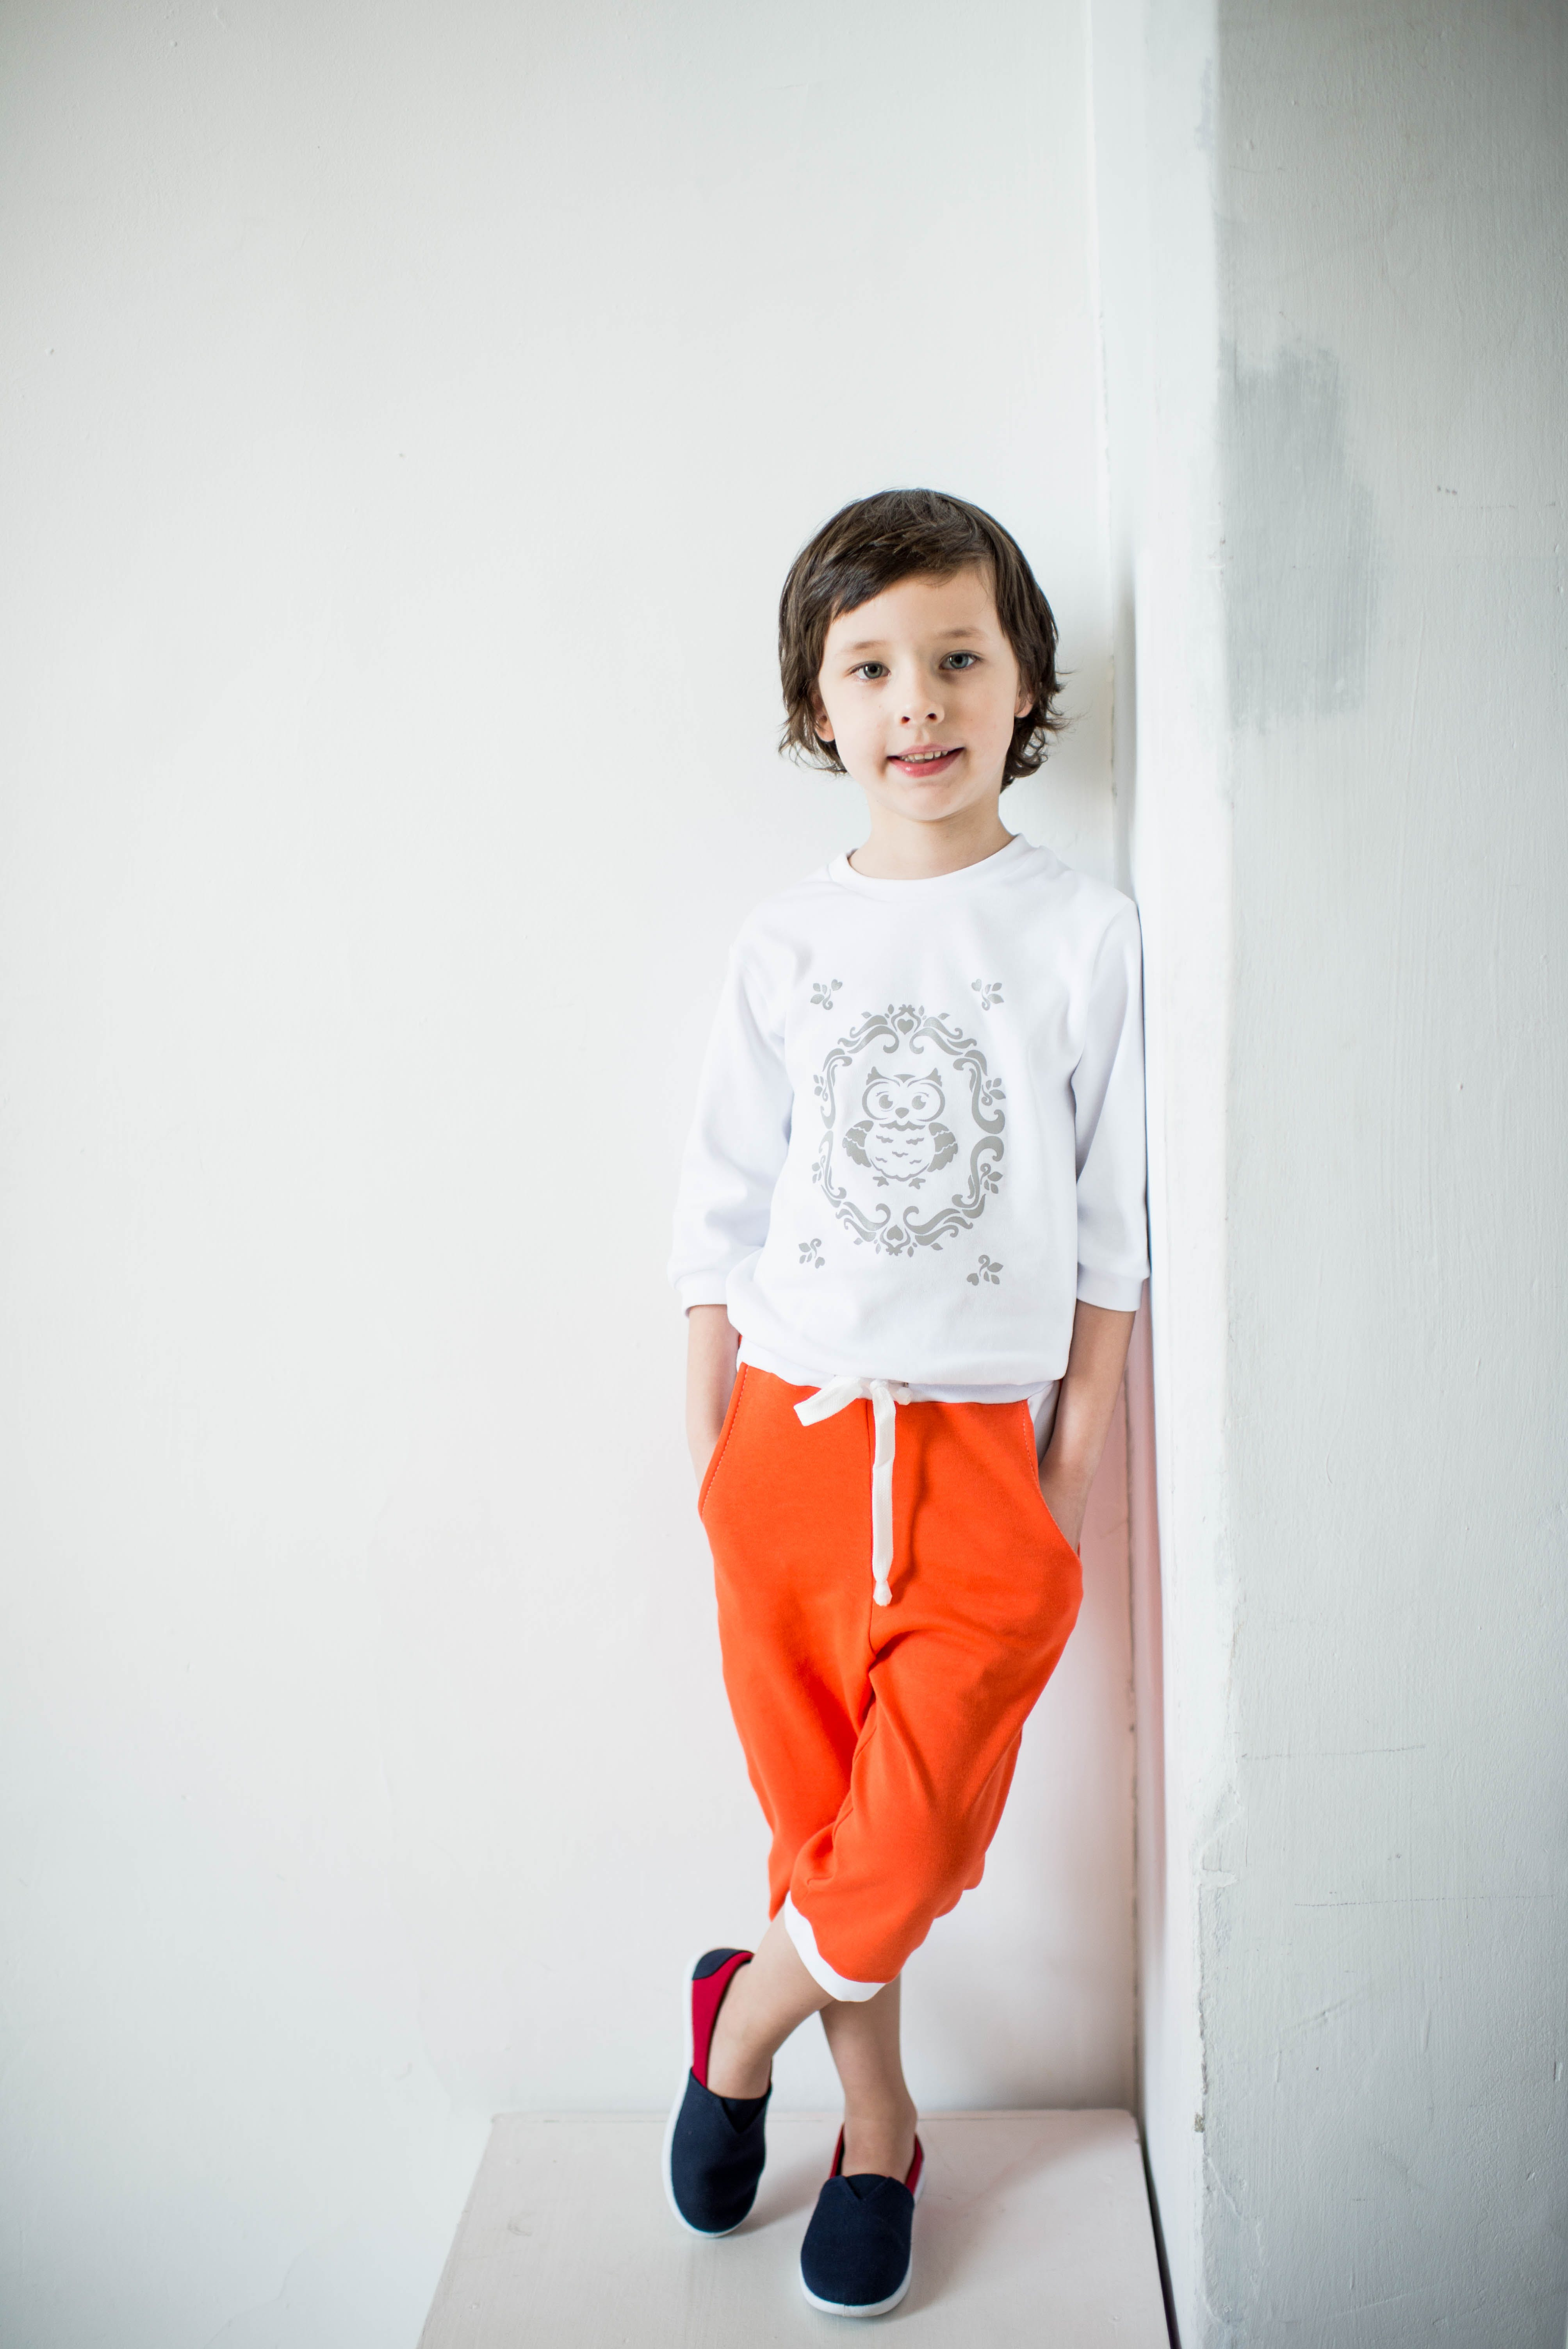 Photo of Child Leaning on Wall With Feet Crossed